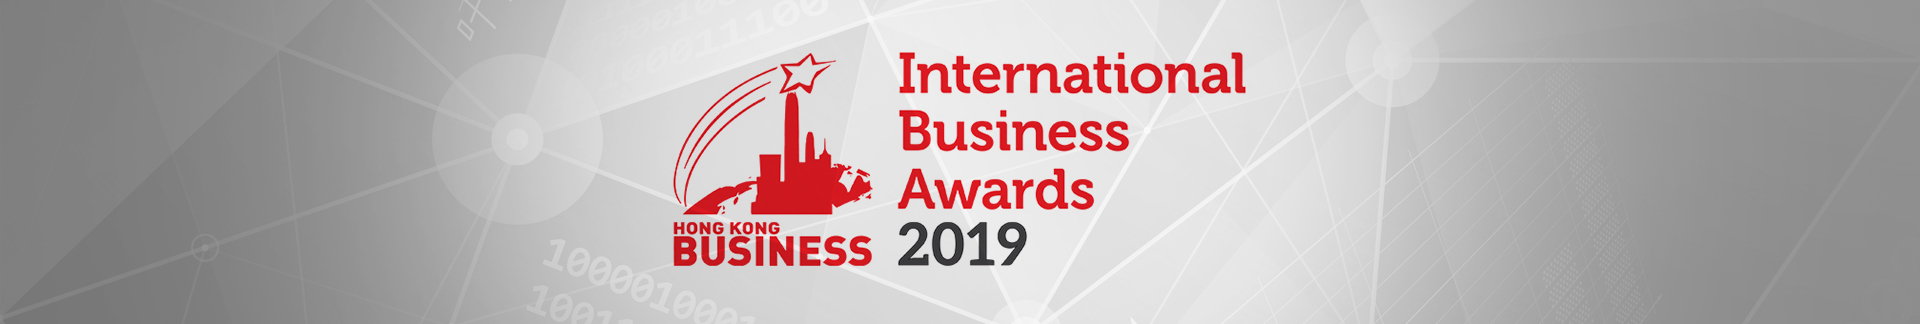 International Business Awards news banner